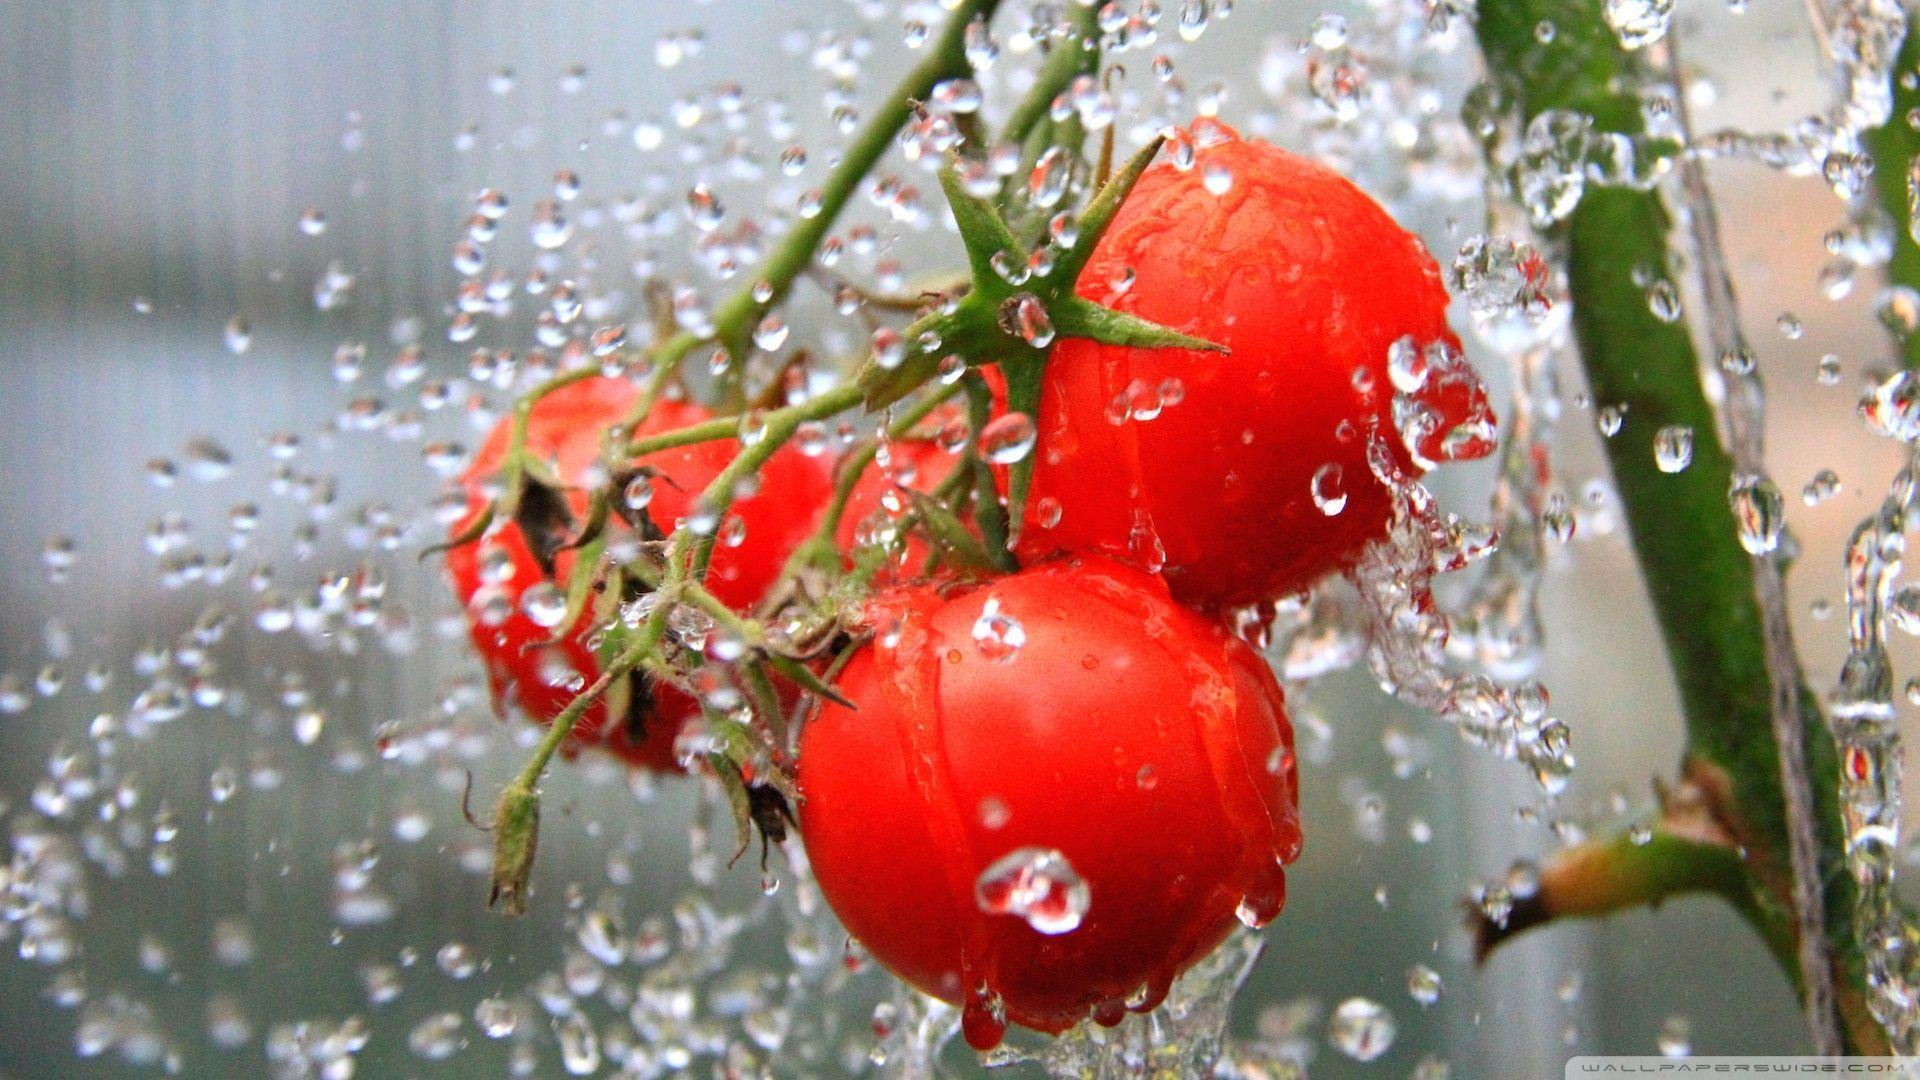 The Tomato Shower HD desktop wallpapers : High Definition